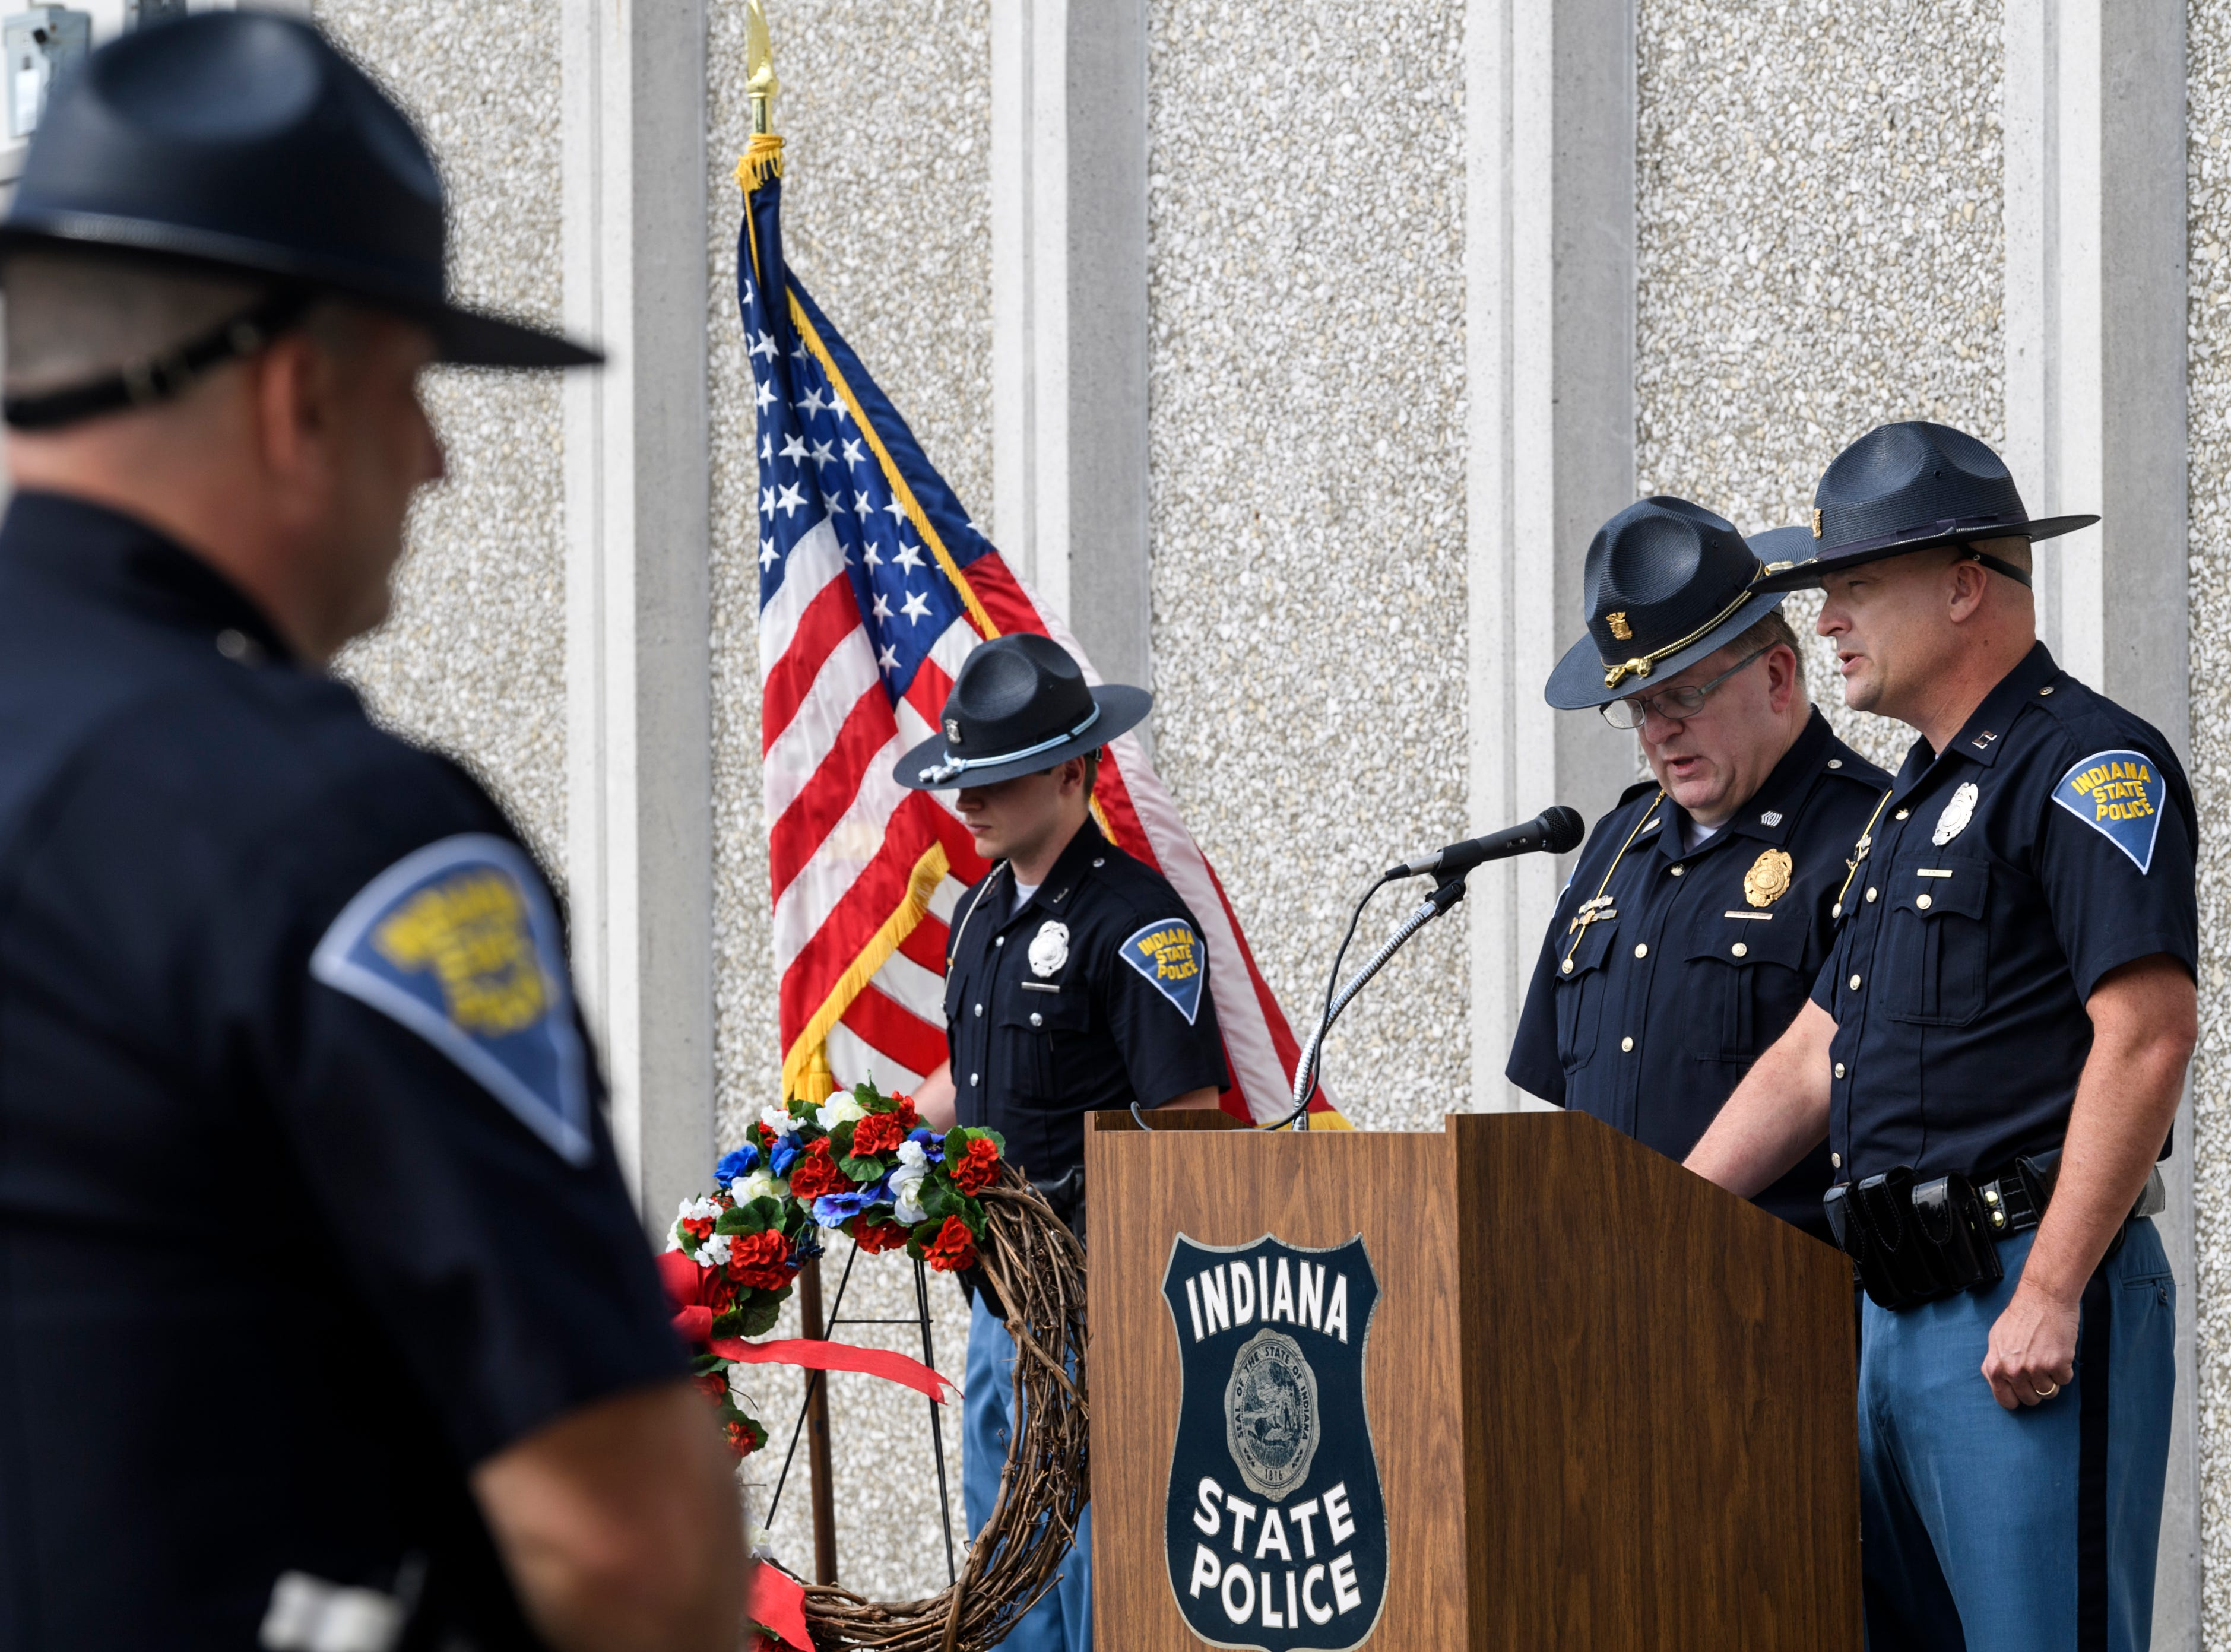 Indiana State Police troopers including Daltyn Backes, center left to right, listen as 1st Sgt, Tom Weber, Evansville's Assistant District Commander, and Capt. Robert Priest read the names of the 46 officers who have died in the line of duty since 1933 during an annual memorial service at ISP's Evansville post, Wednesday morning, May 8, 2019.